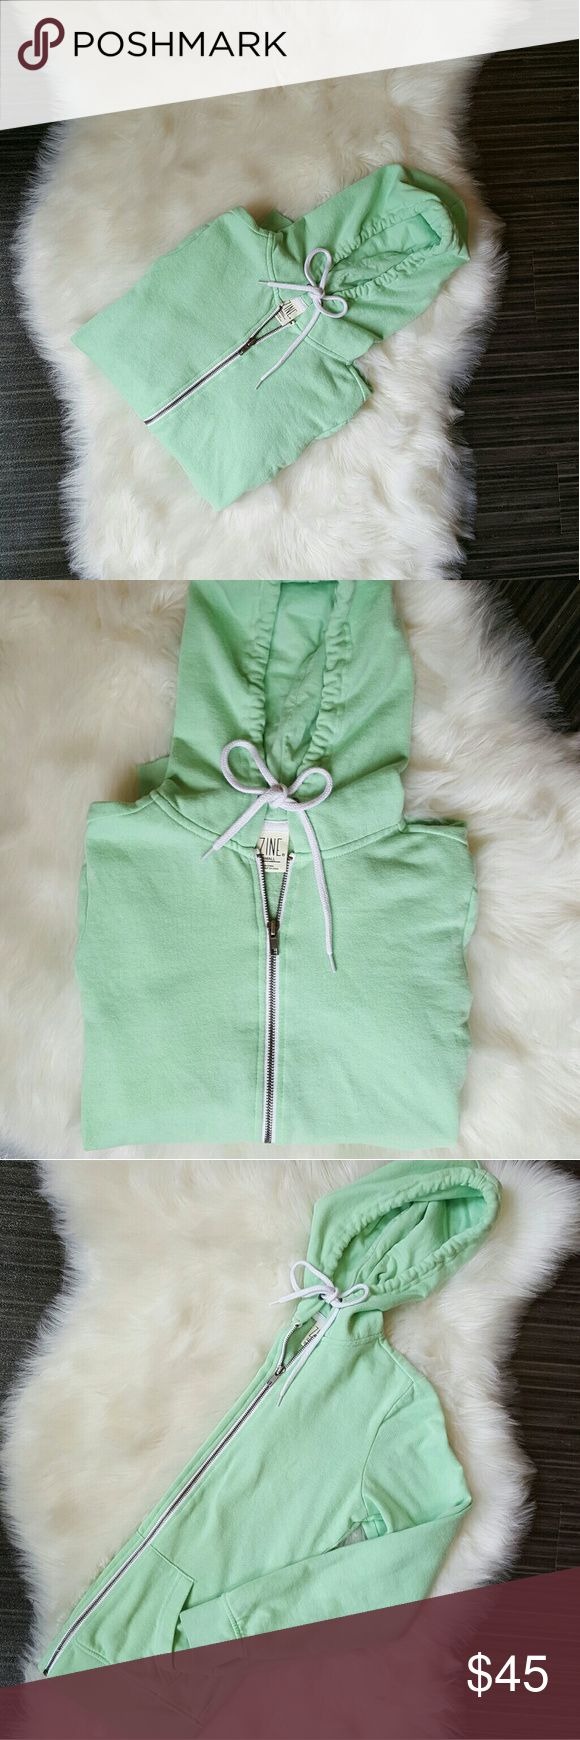 Zine Light Lime Green Zip-up Hoodie Women's extra small, lime green hoodie, beautiful and super comfortable!  Excellent condition!   Accepting only reasonable offers, thank you! Zine Clothing Tops Sweatshirts & Hoodies